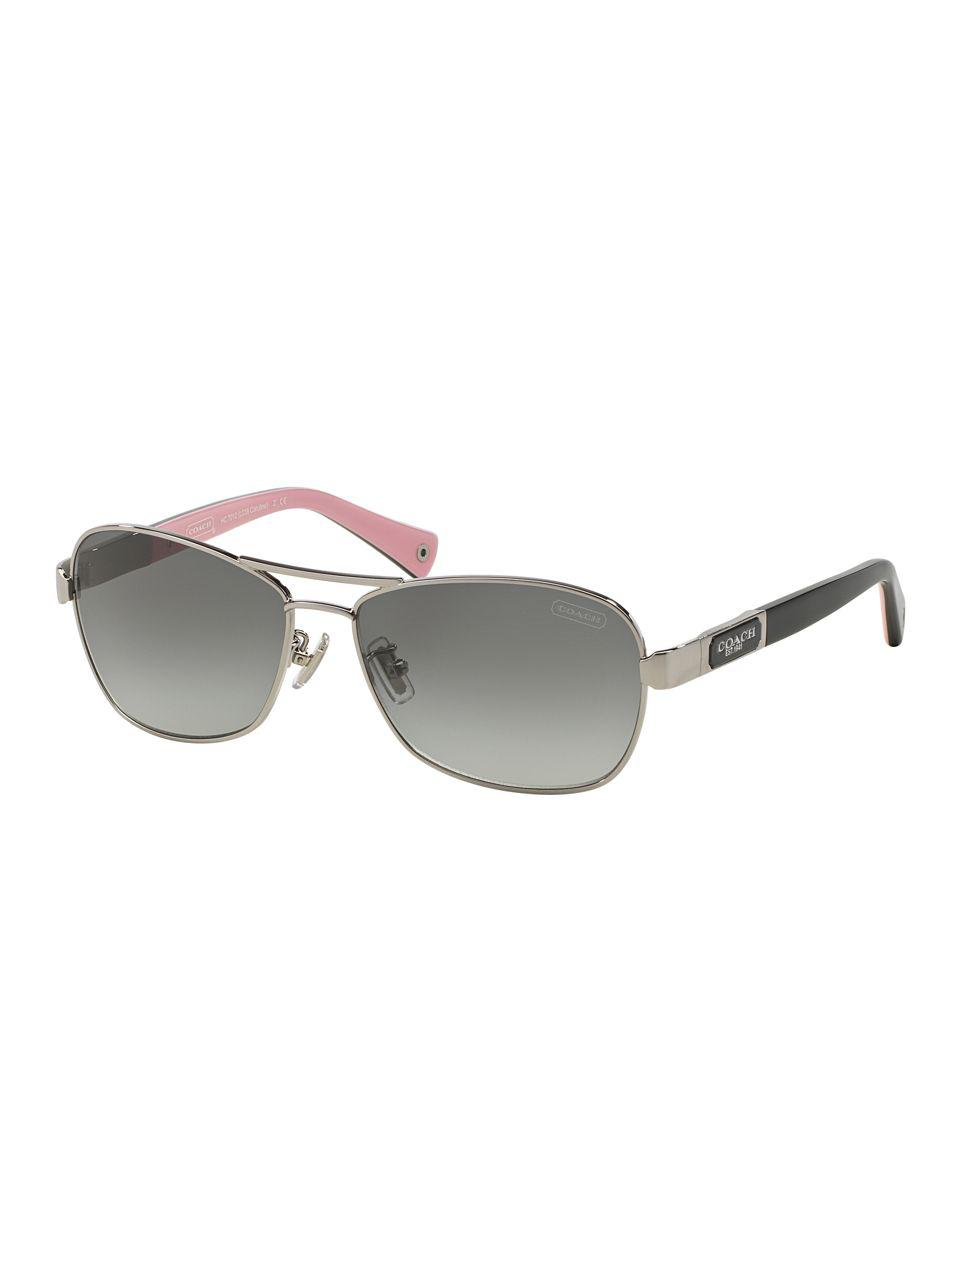 aed1cd1865c1 ... greece lyst coach caroline 56mm pilot sunglasses in gray 5bacc 1cd22